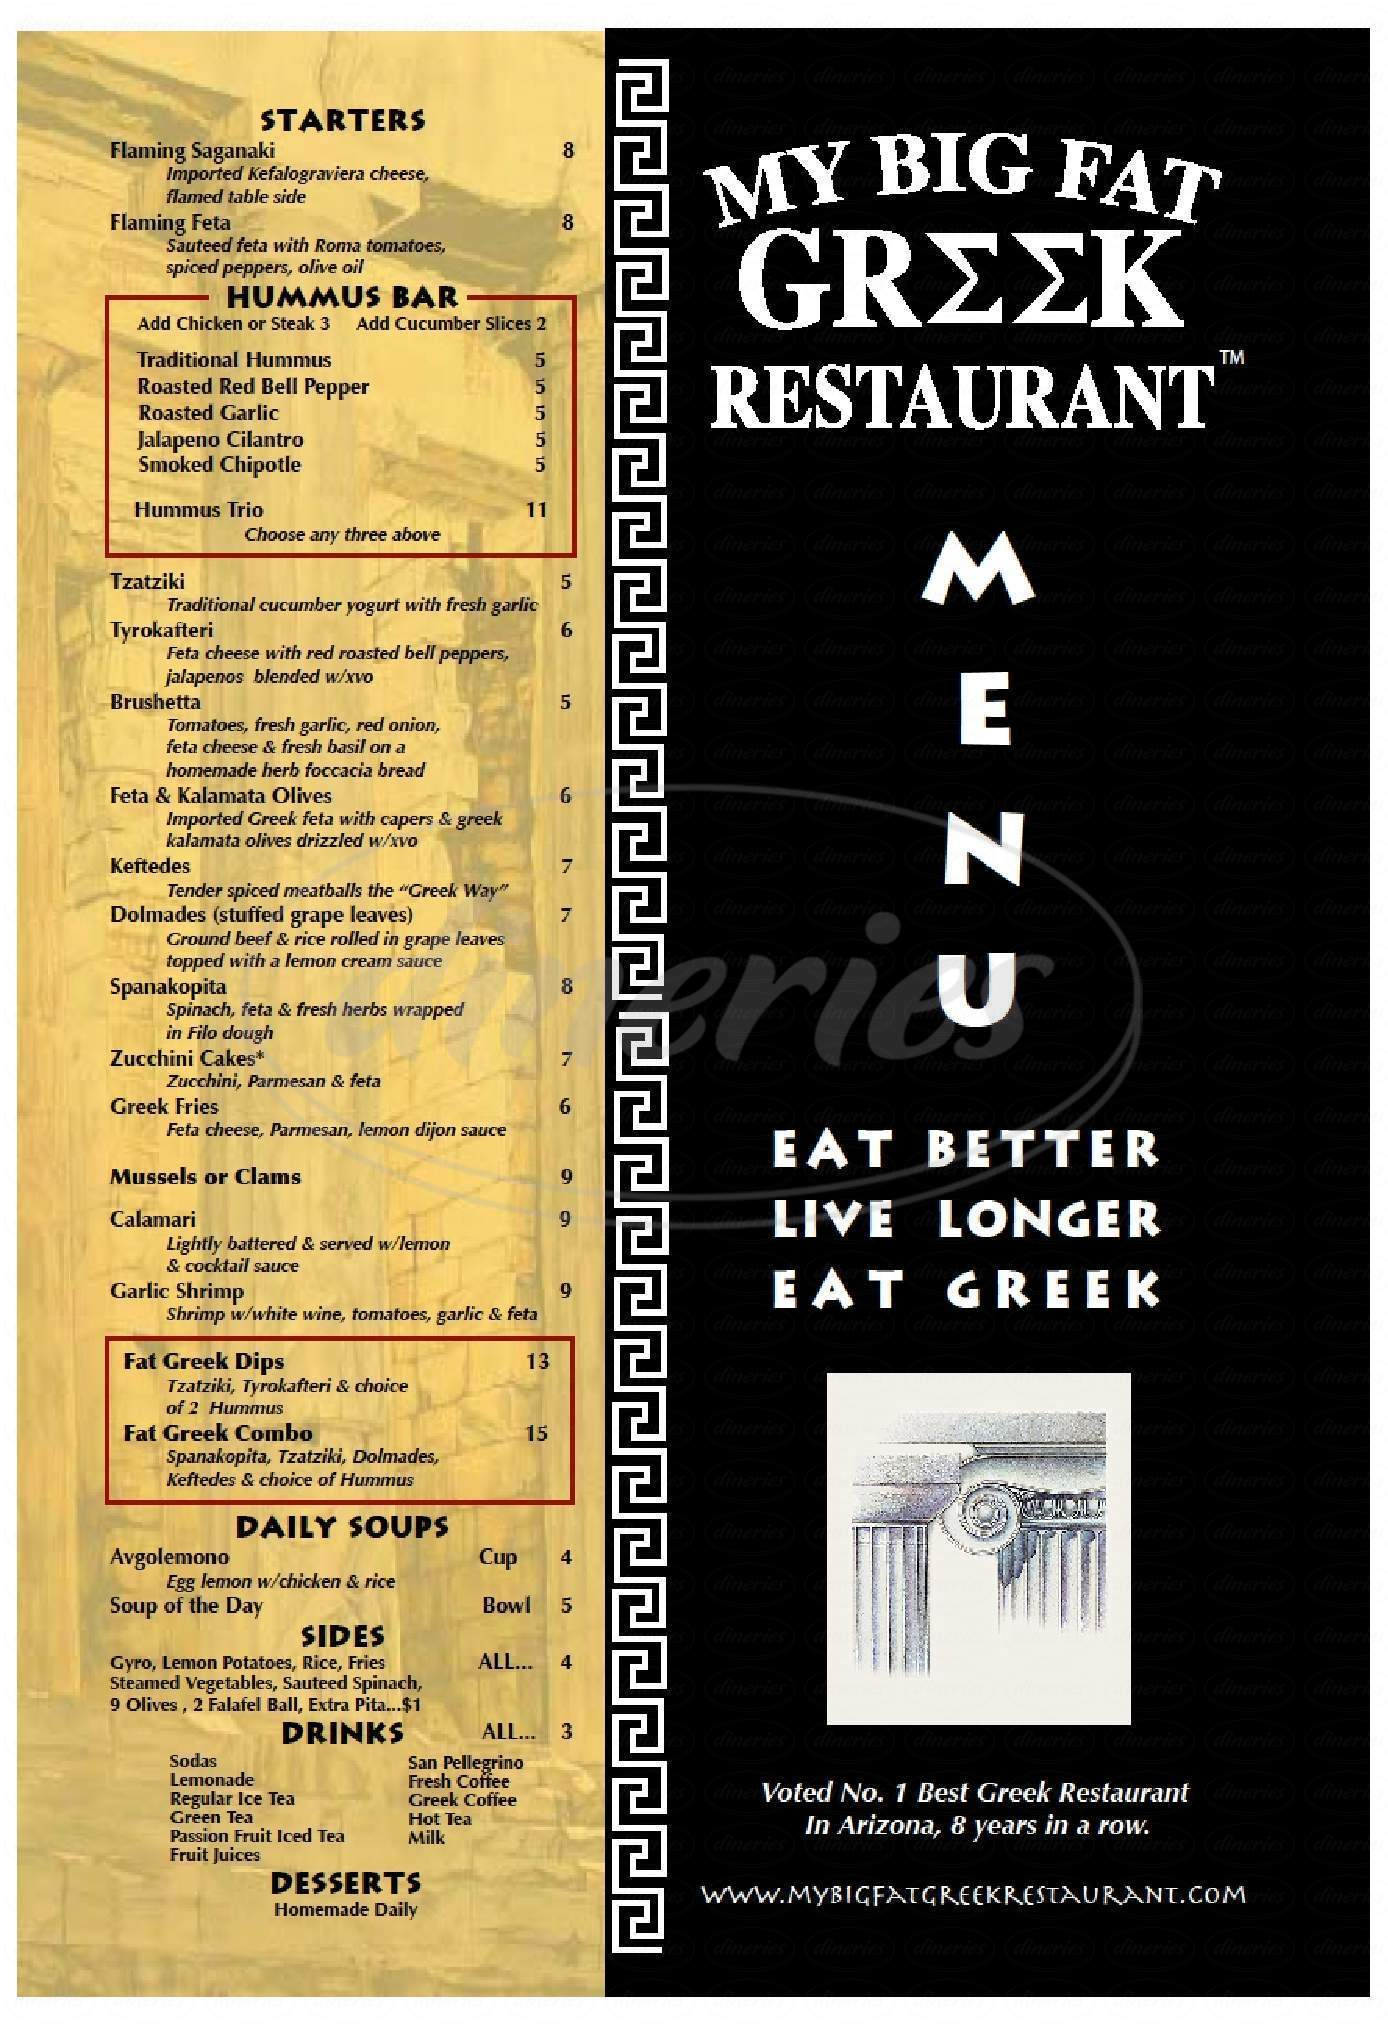 menu for My Big Fat Greek Restaurant